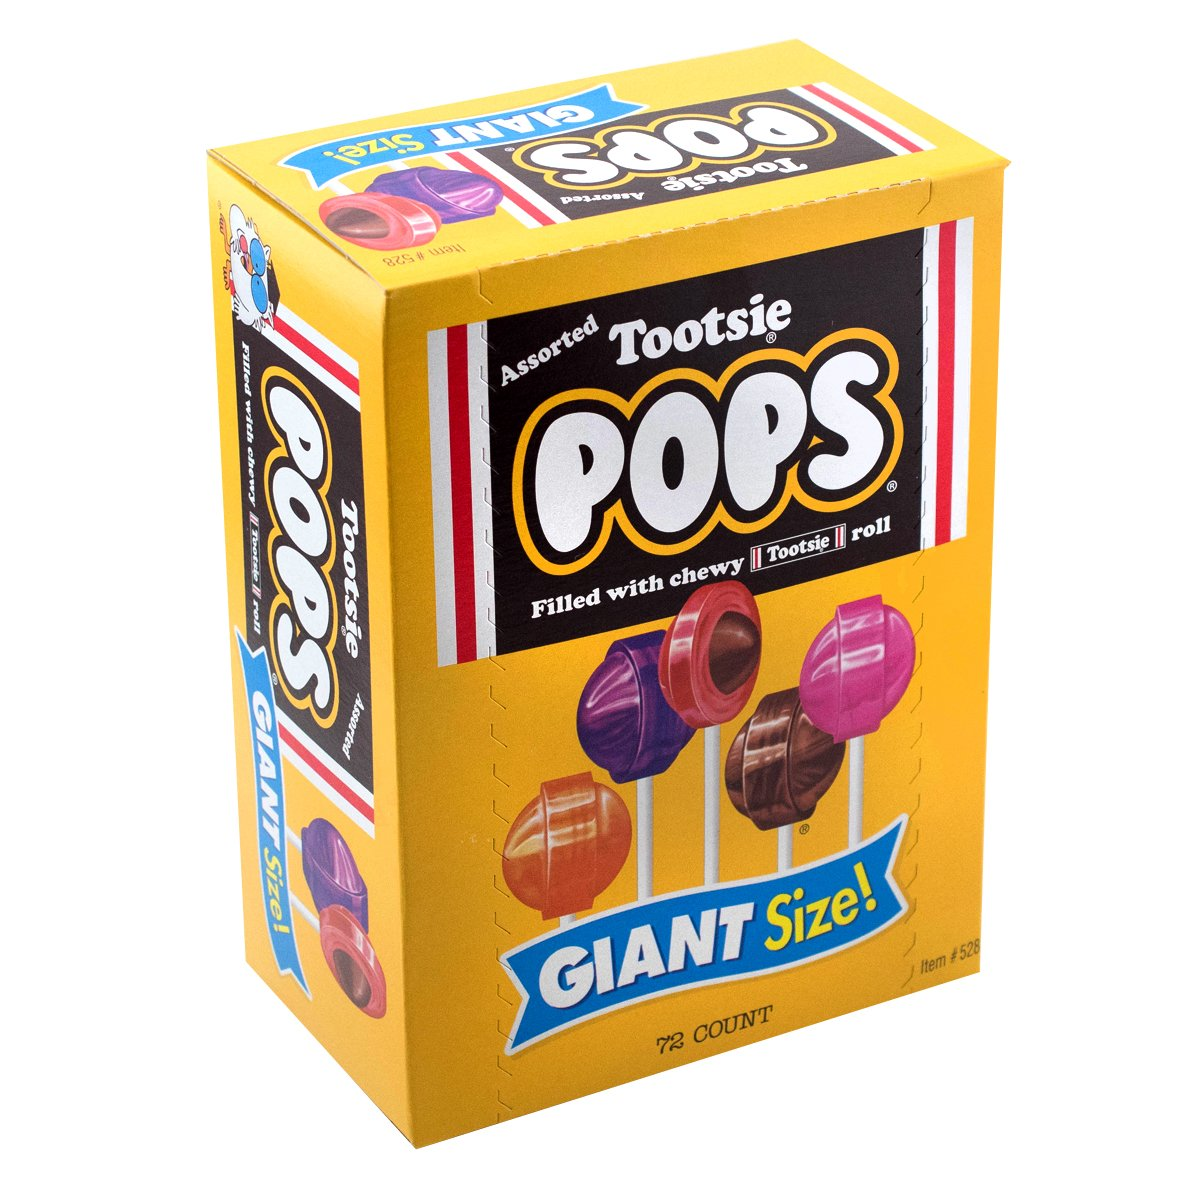 Tootsie Pops Giant Size, 72 Count, 3.82 Pounds